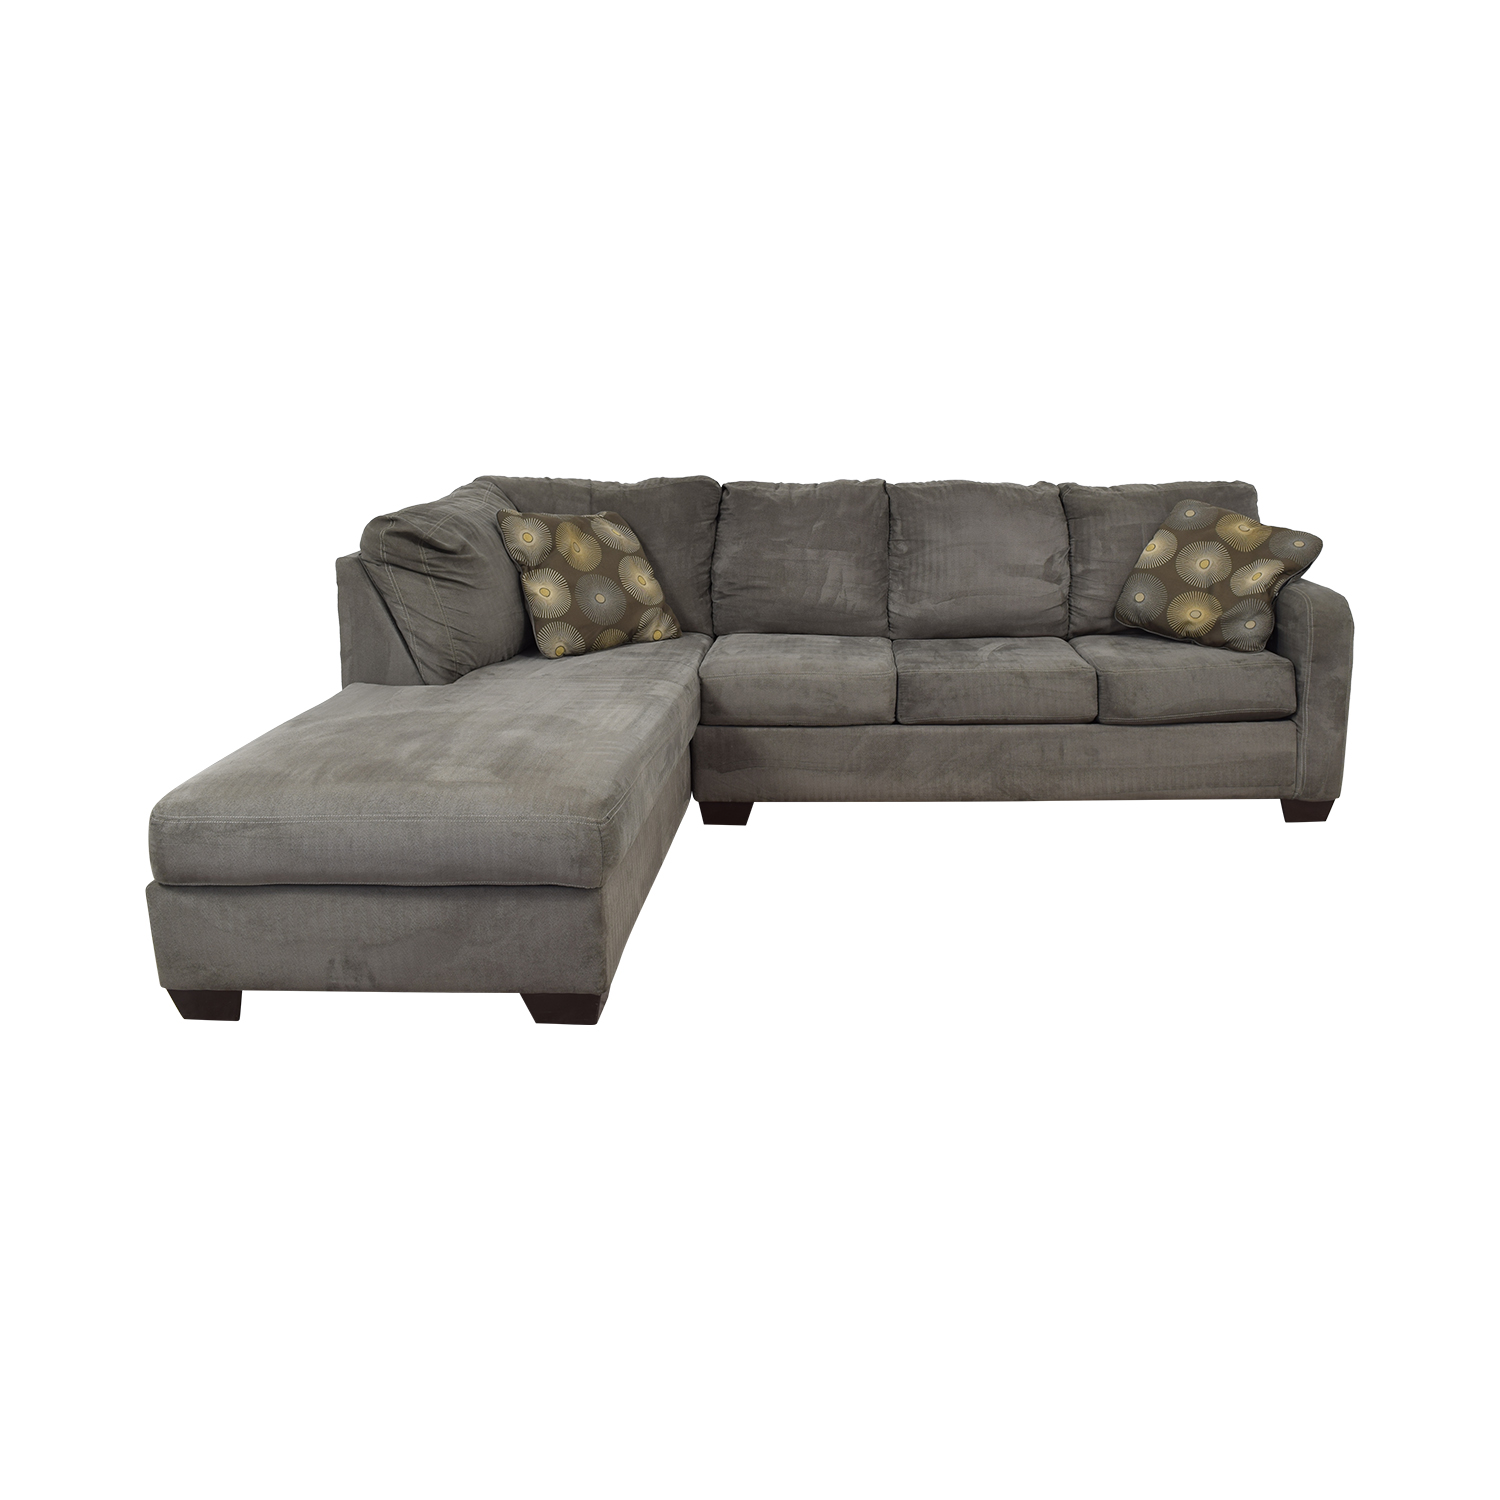 Ashley Furniture Ashley Furniture Gray Sectional discount